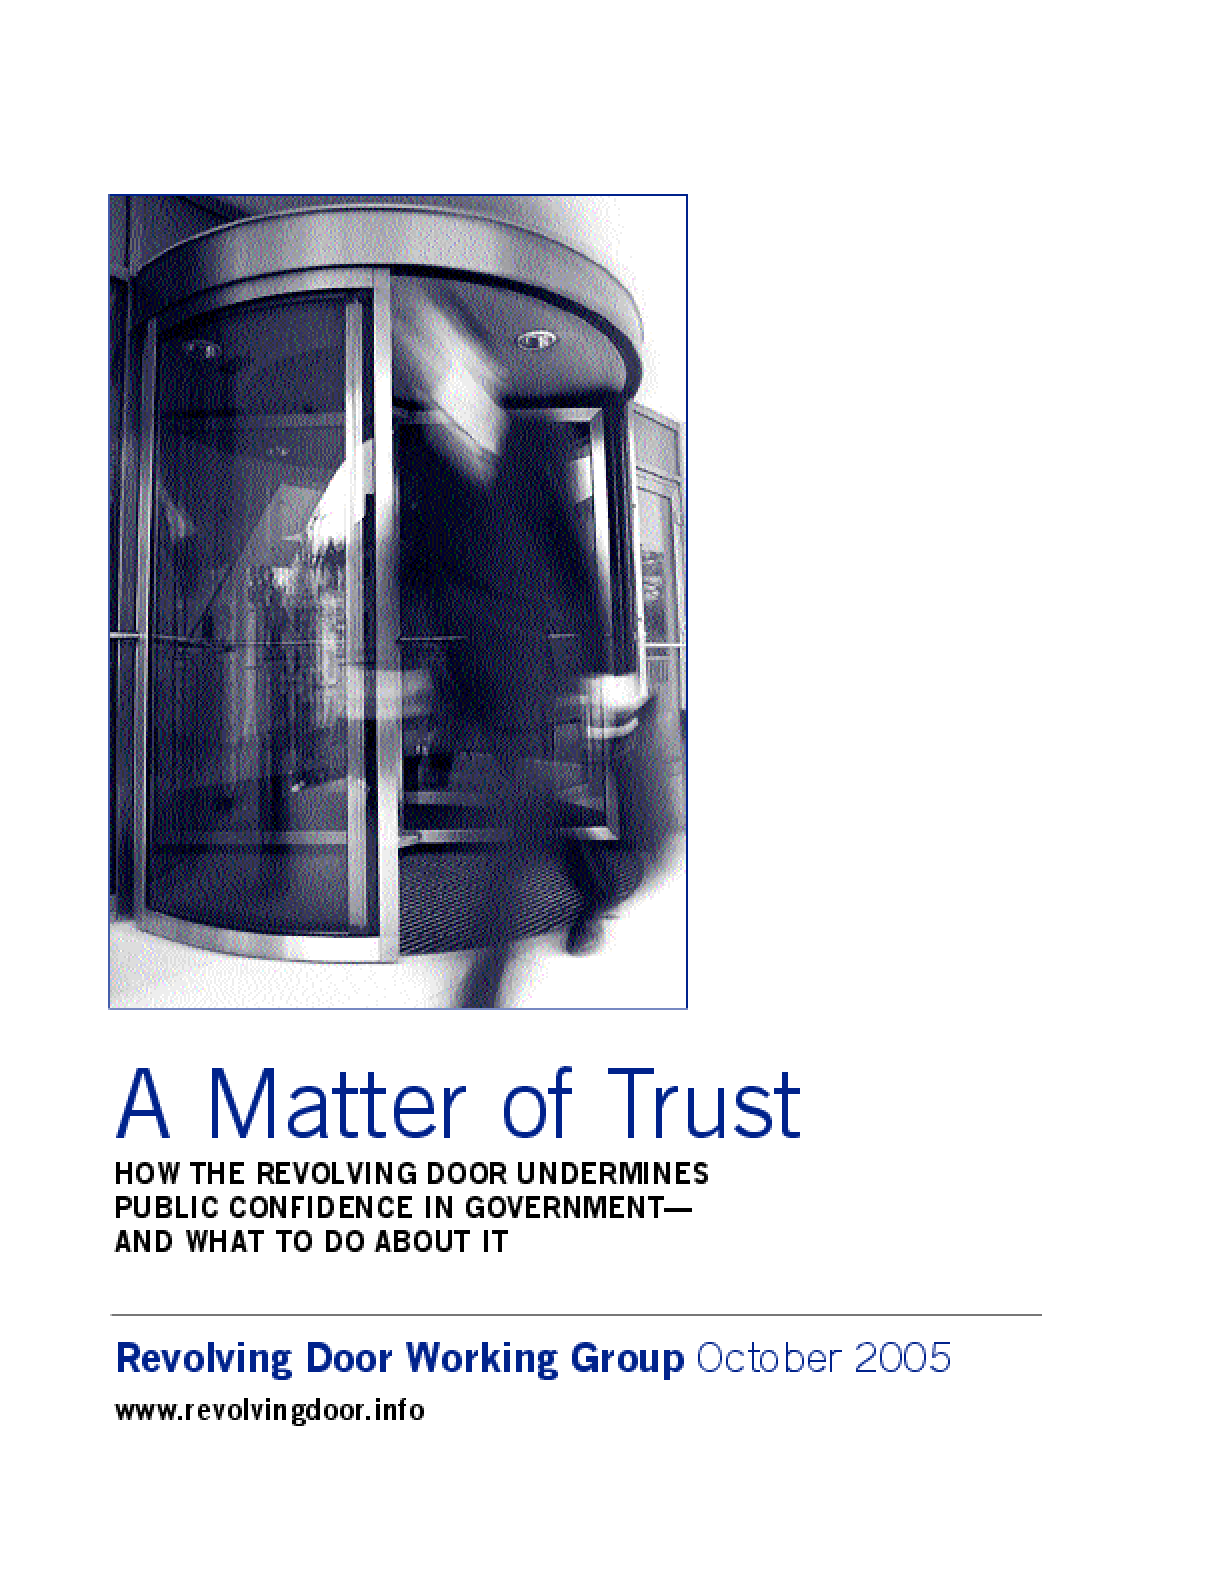 A Matter Of Trust: How The Revolving Door Undermines Public Confidence In Government - And What To Do About It